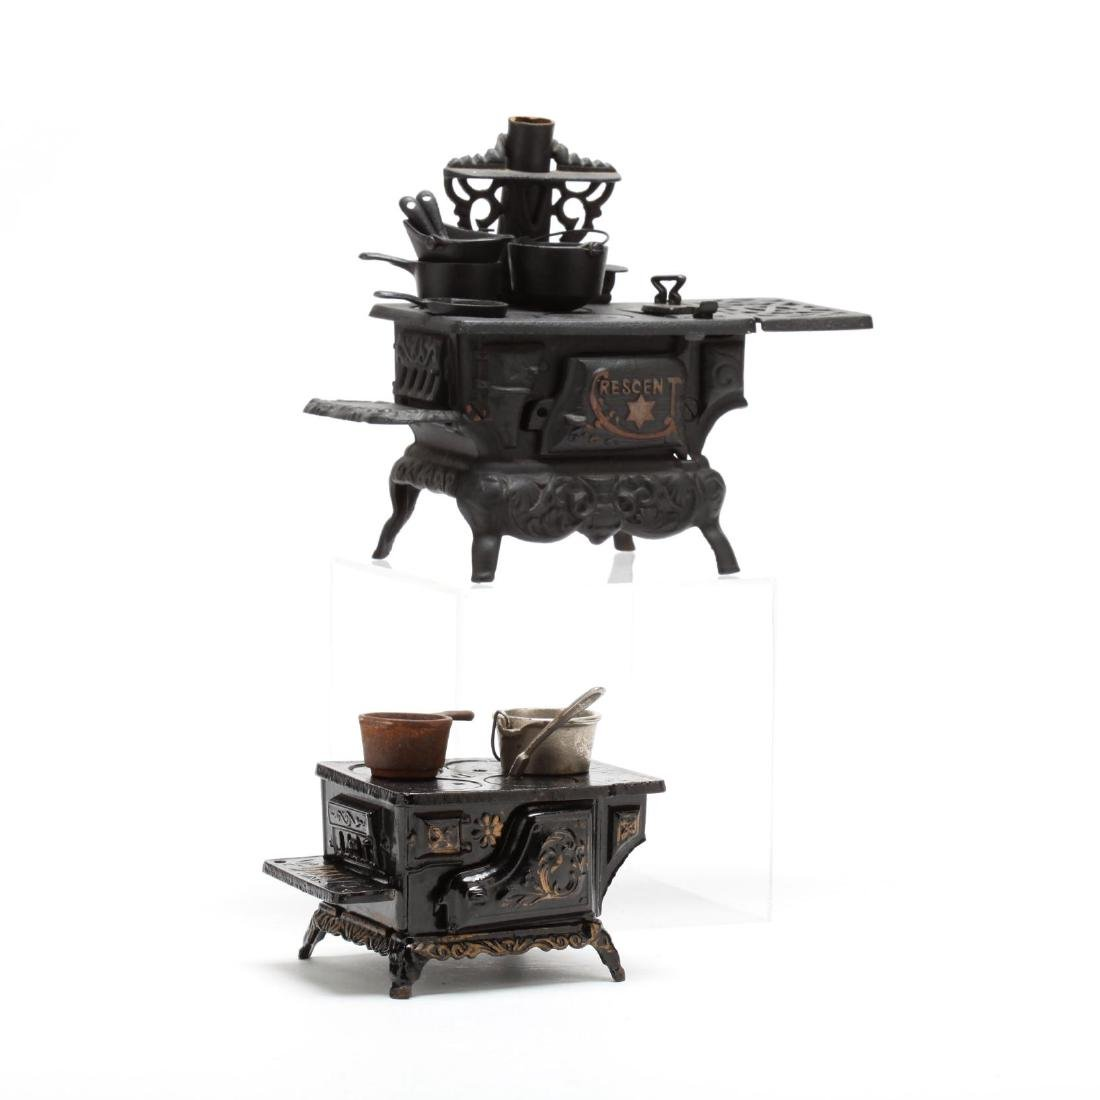 Two Toy Cast Iron Stoves